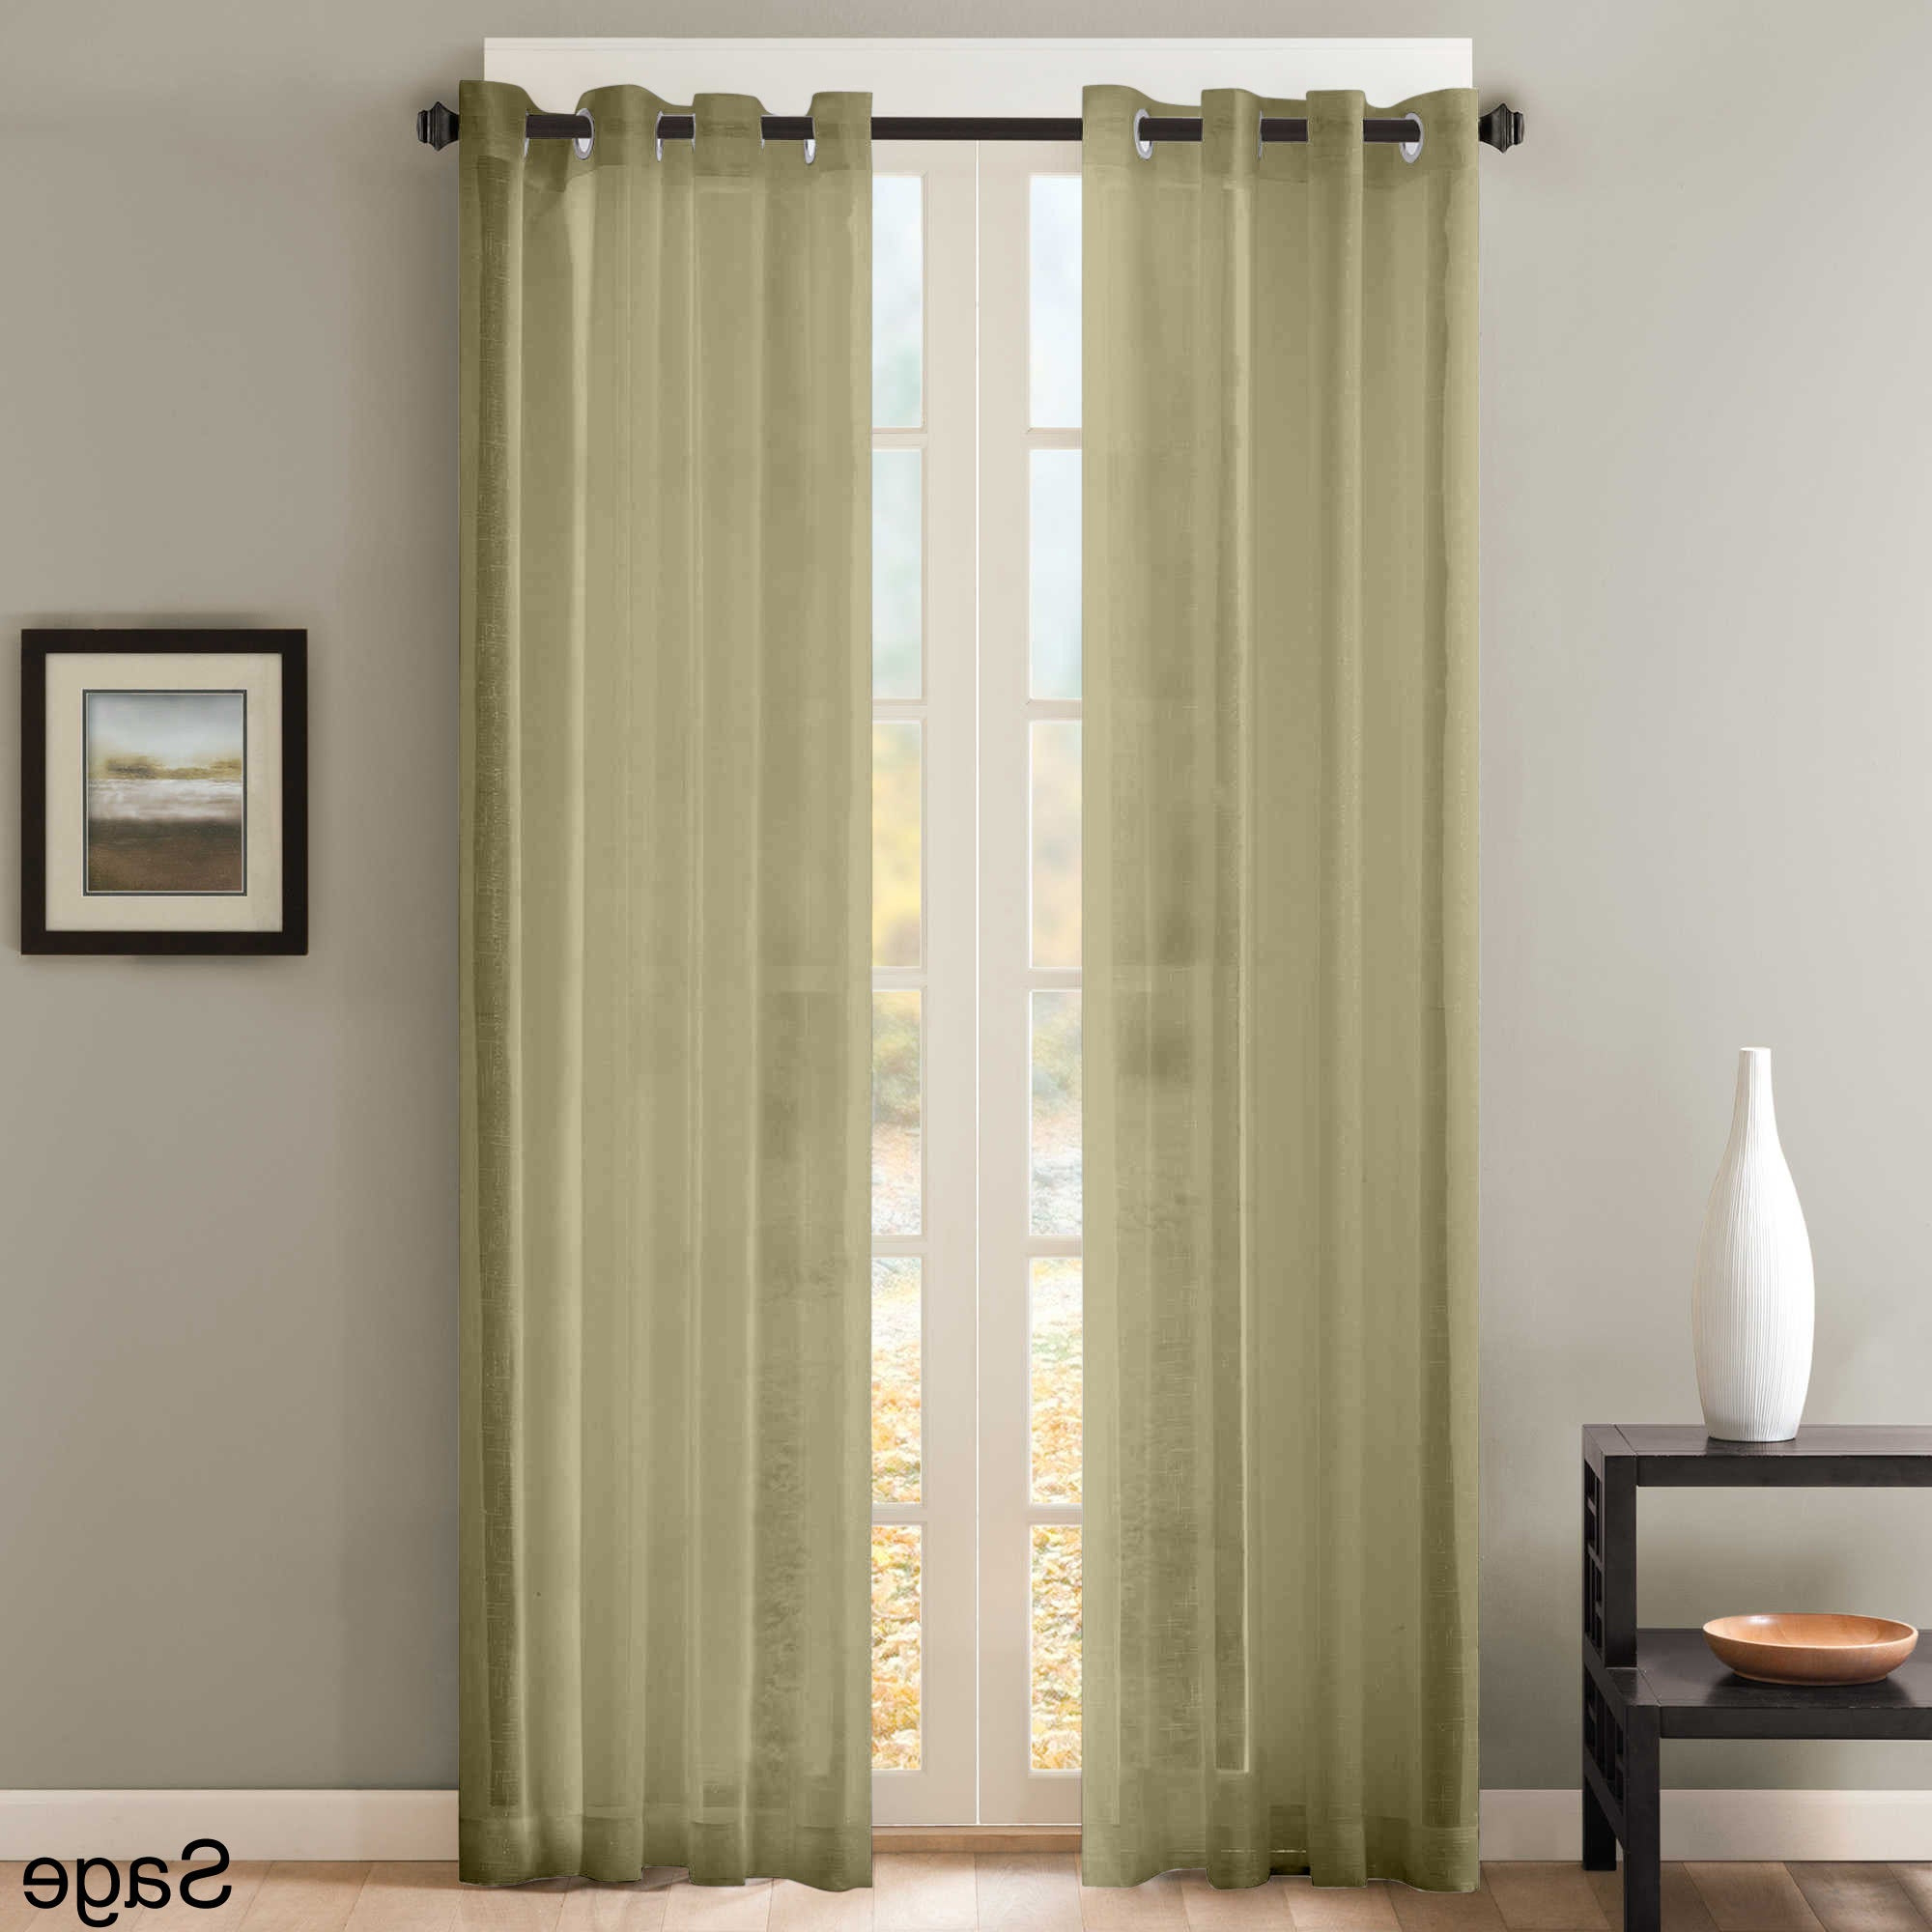 Sheer Window Curtain Grommet Curtain Panel Pair With Regard To Most Current Luxury Collection Venetian Sheer Curtain Panel Pairs (View 7 of 20)